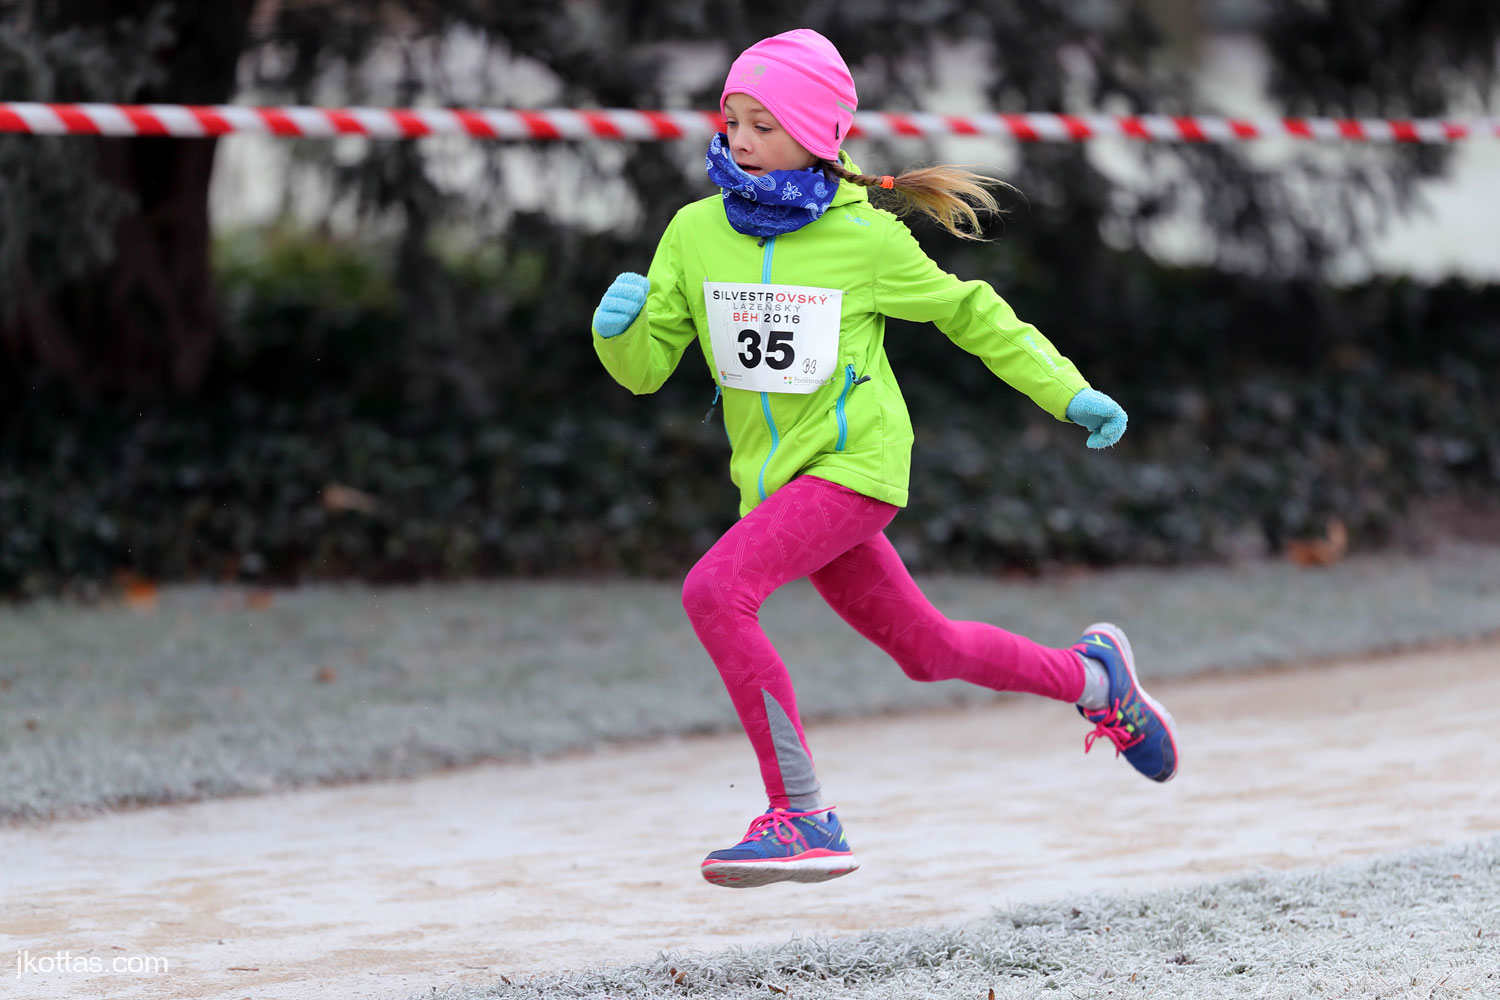 podebrady-spa-silvestr-run-17